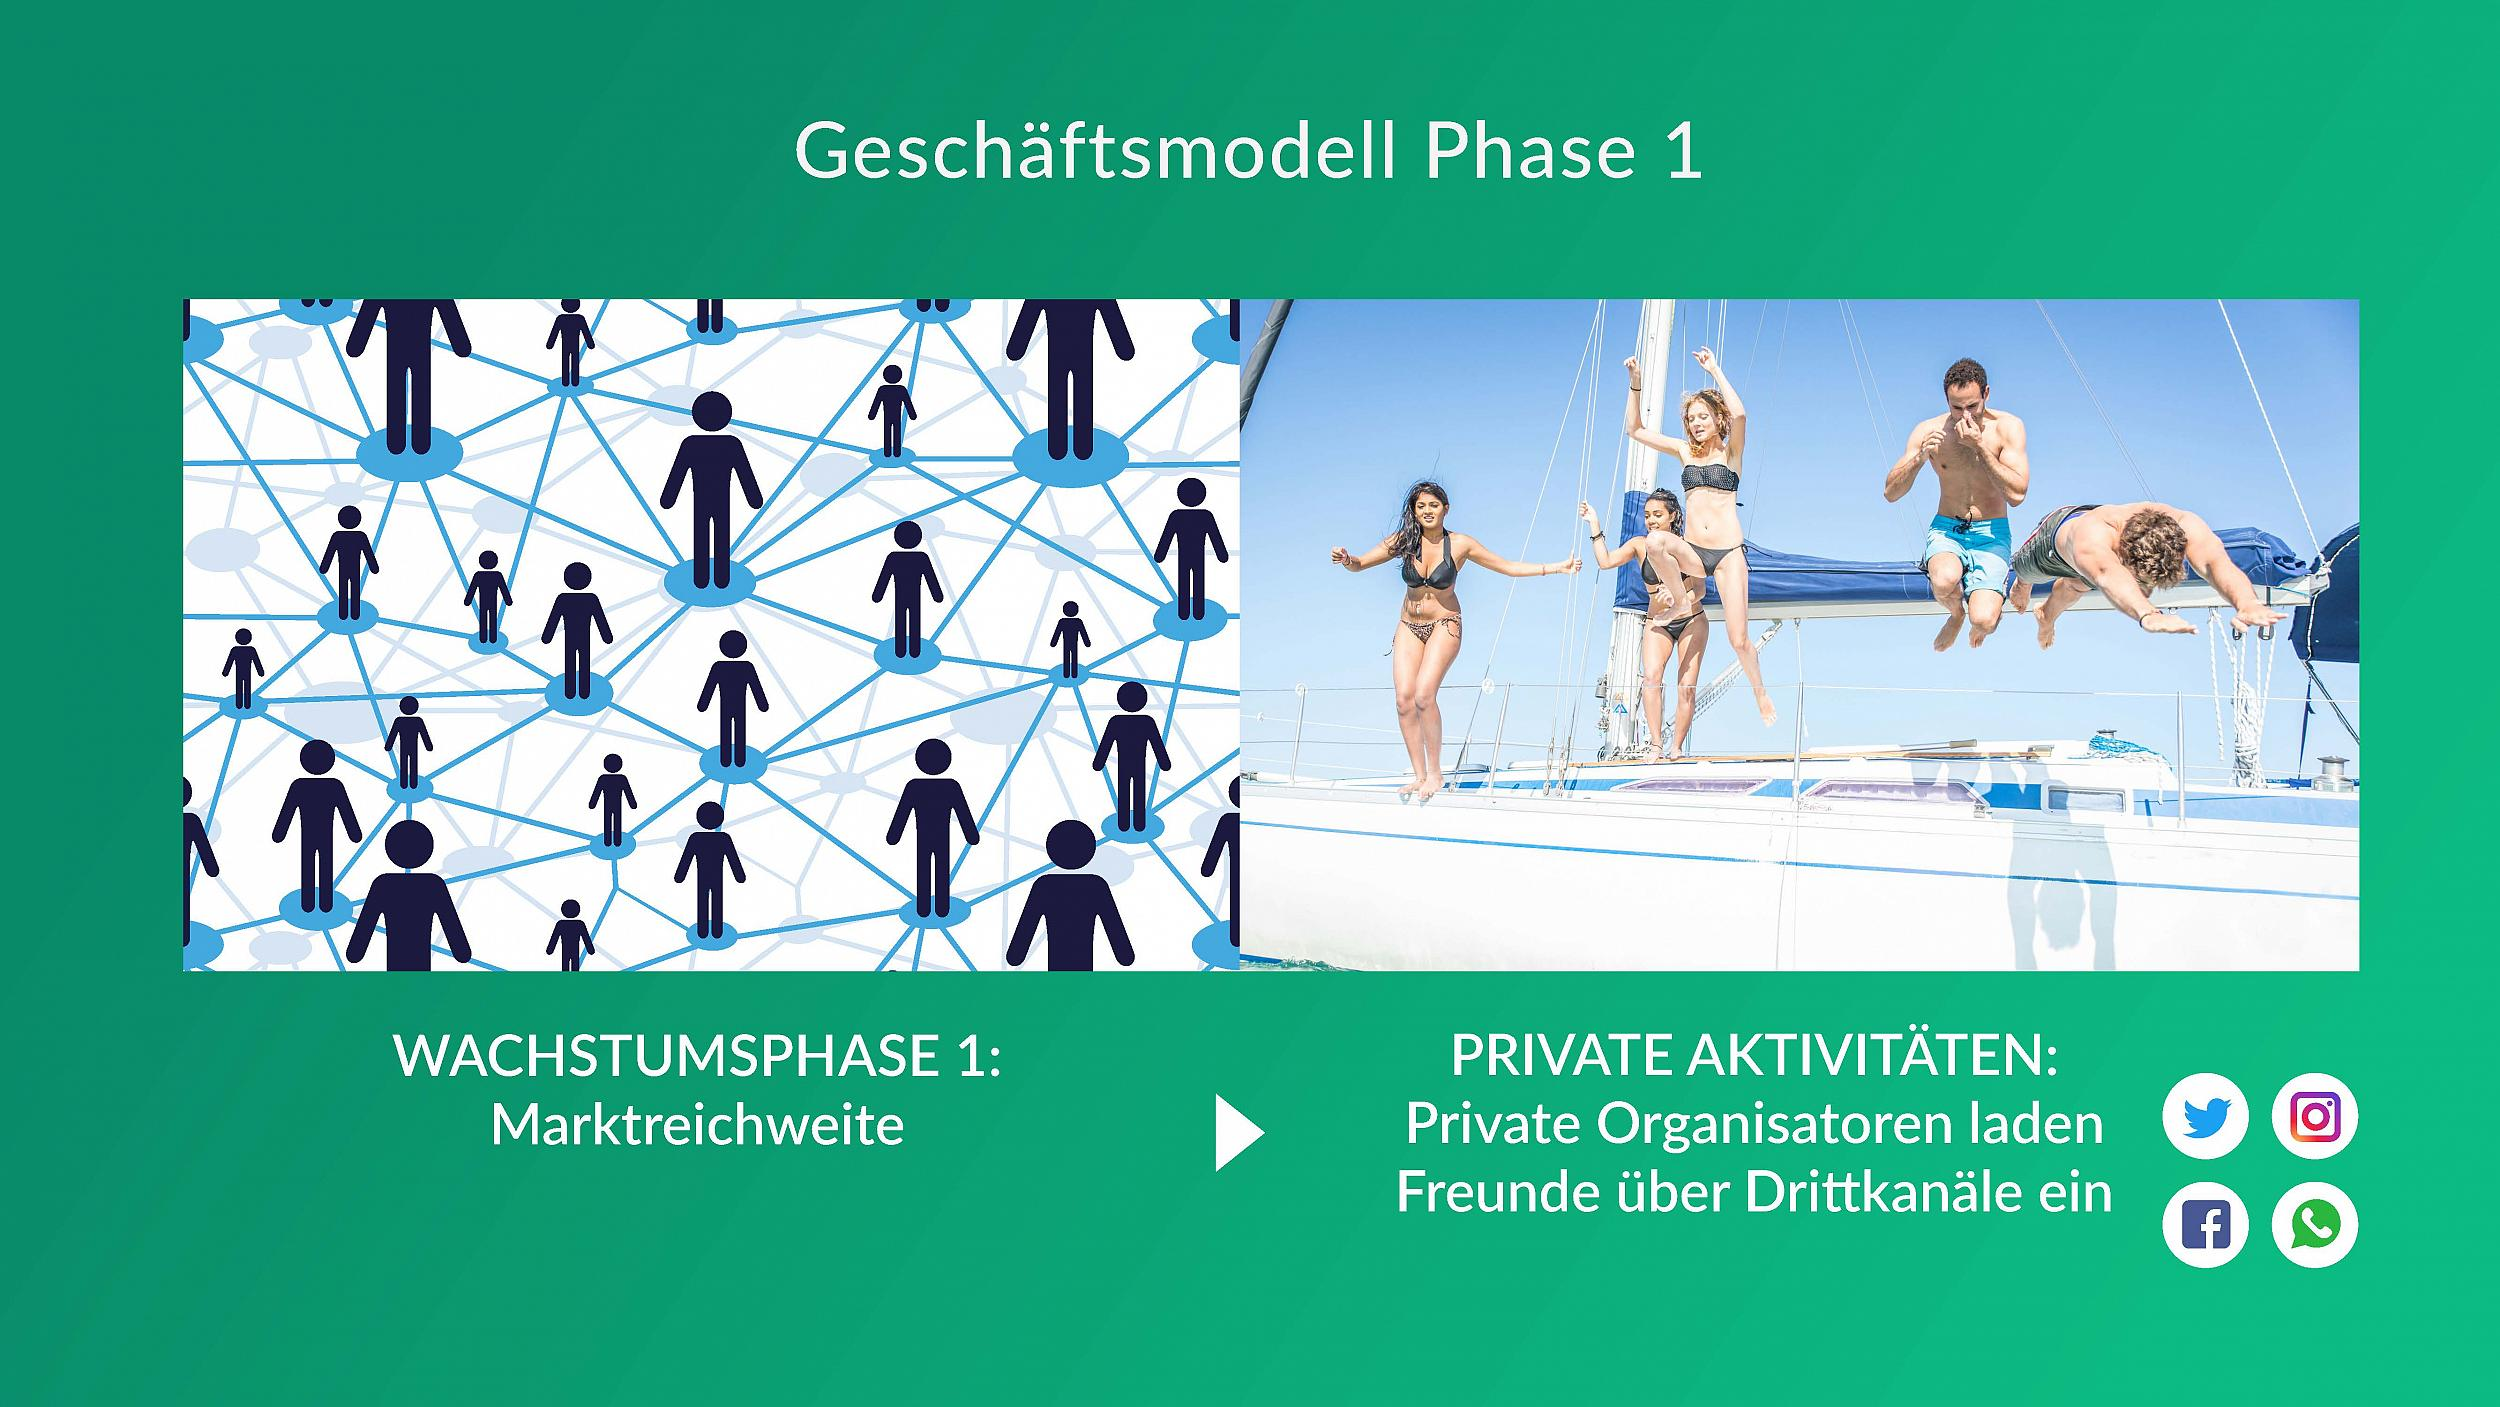 GroopDoo - Geschäftsmodell Phase 1